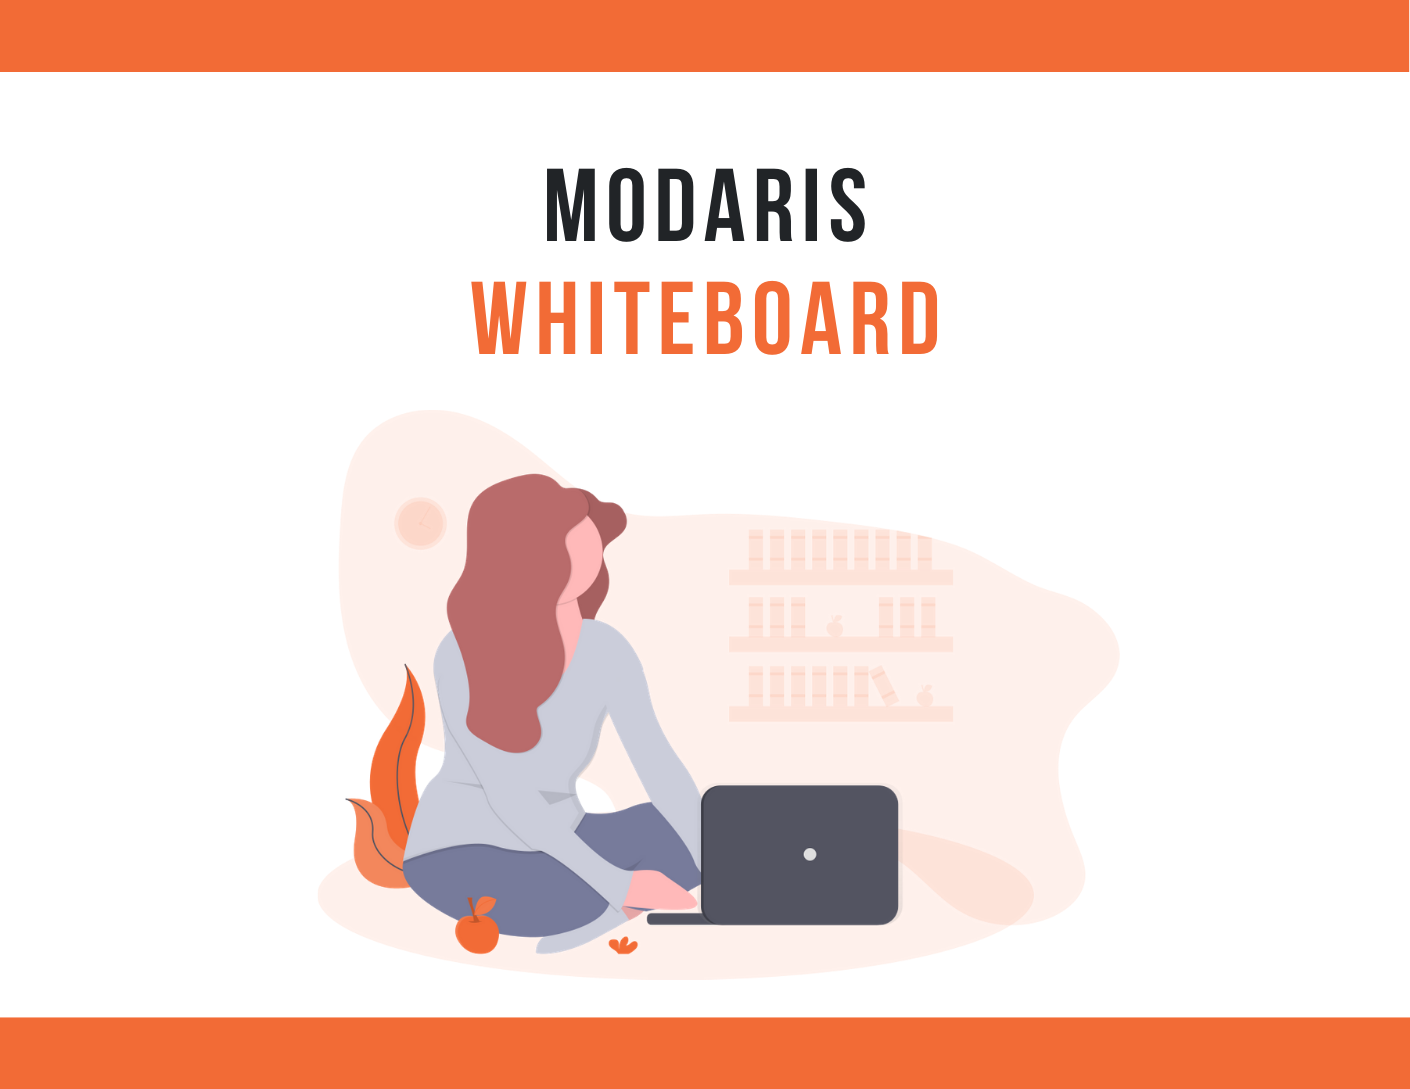 Modaris Launches Virtual Classroom To Help Students With Their Studies During Coronavirus Crisis